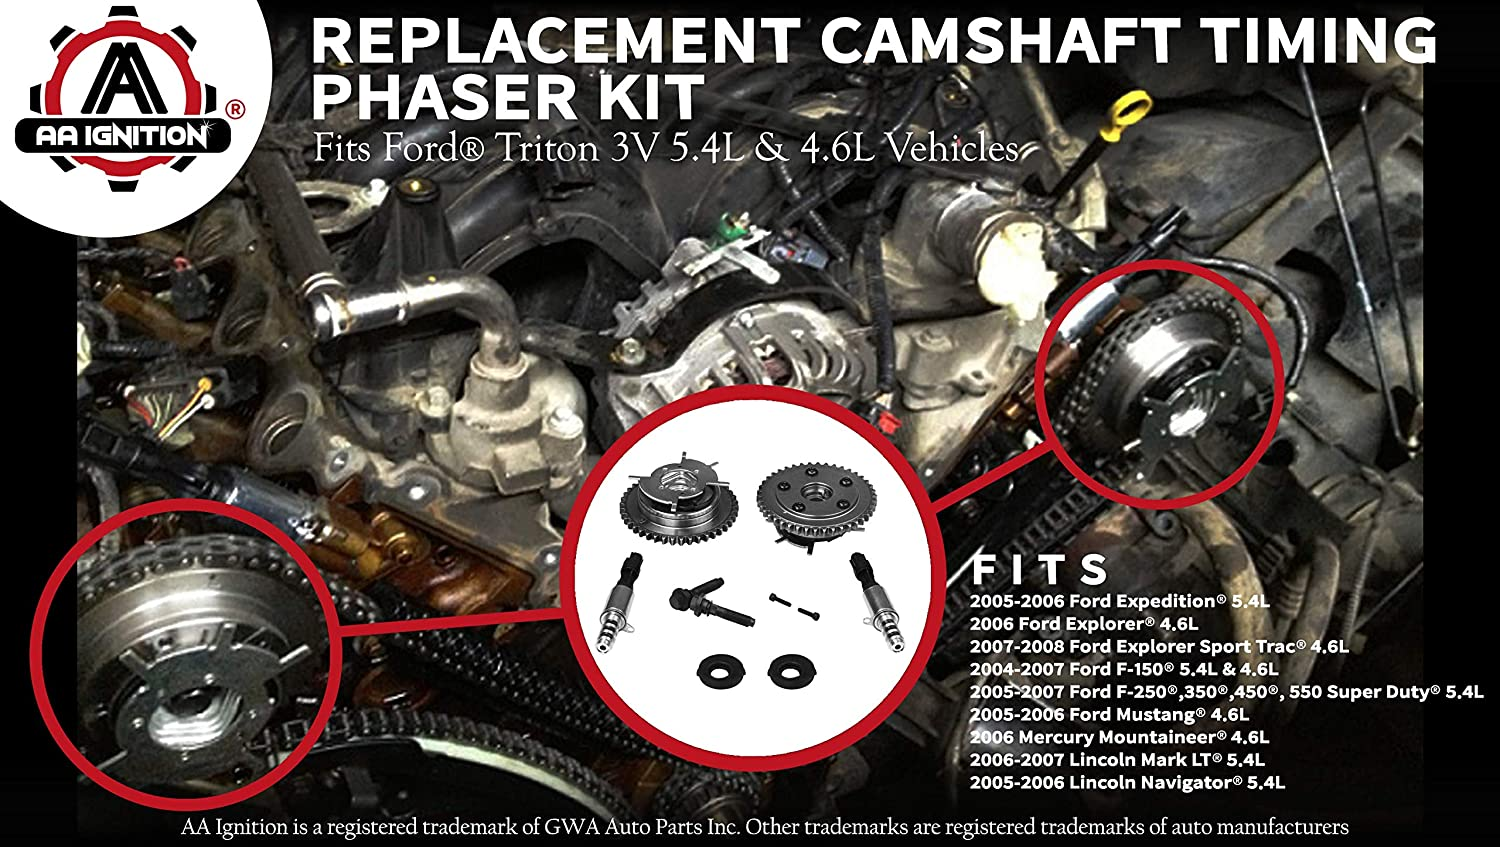 Variable Camshaft Timing Cam Phaser Kit Replaces Ford F 250 Wiring Harness Repair Kits 3r2z6a257da 917 3l3z 6279 Dap 8l3z 6m280 B Fits 150 Expedition More